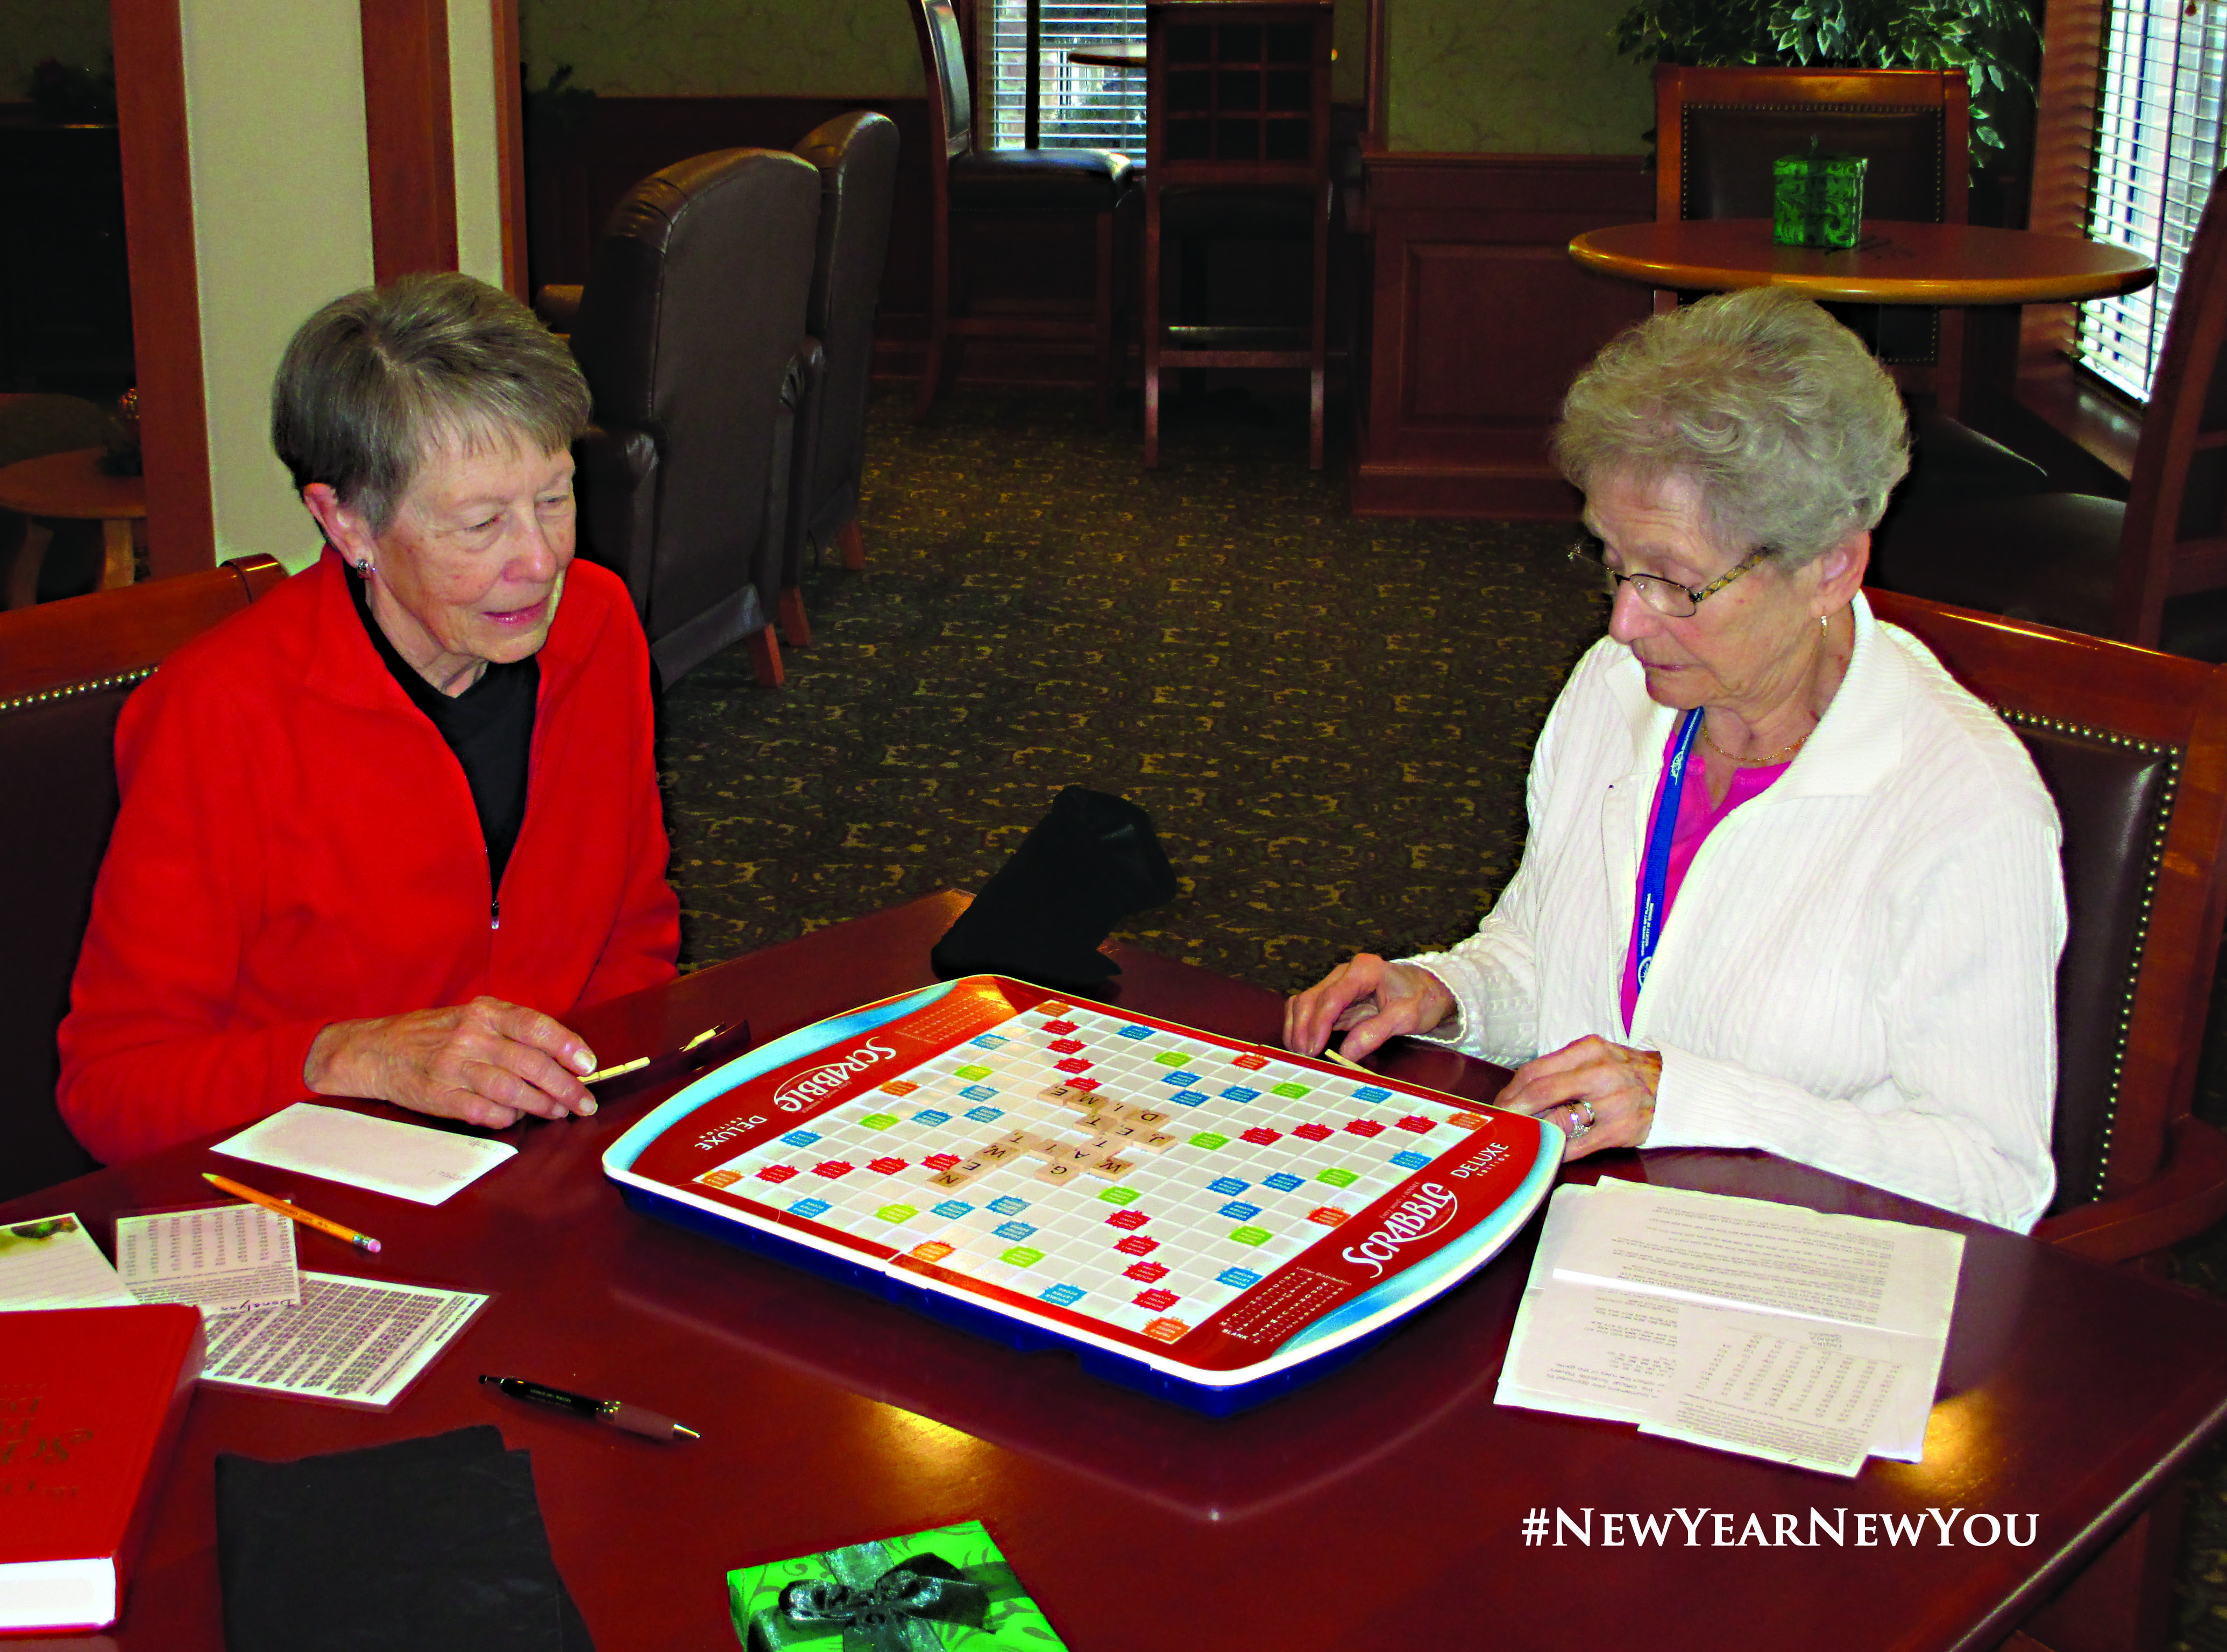 Board Games Like Scrabble Are Ways To Improve Mental